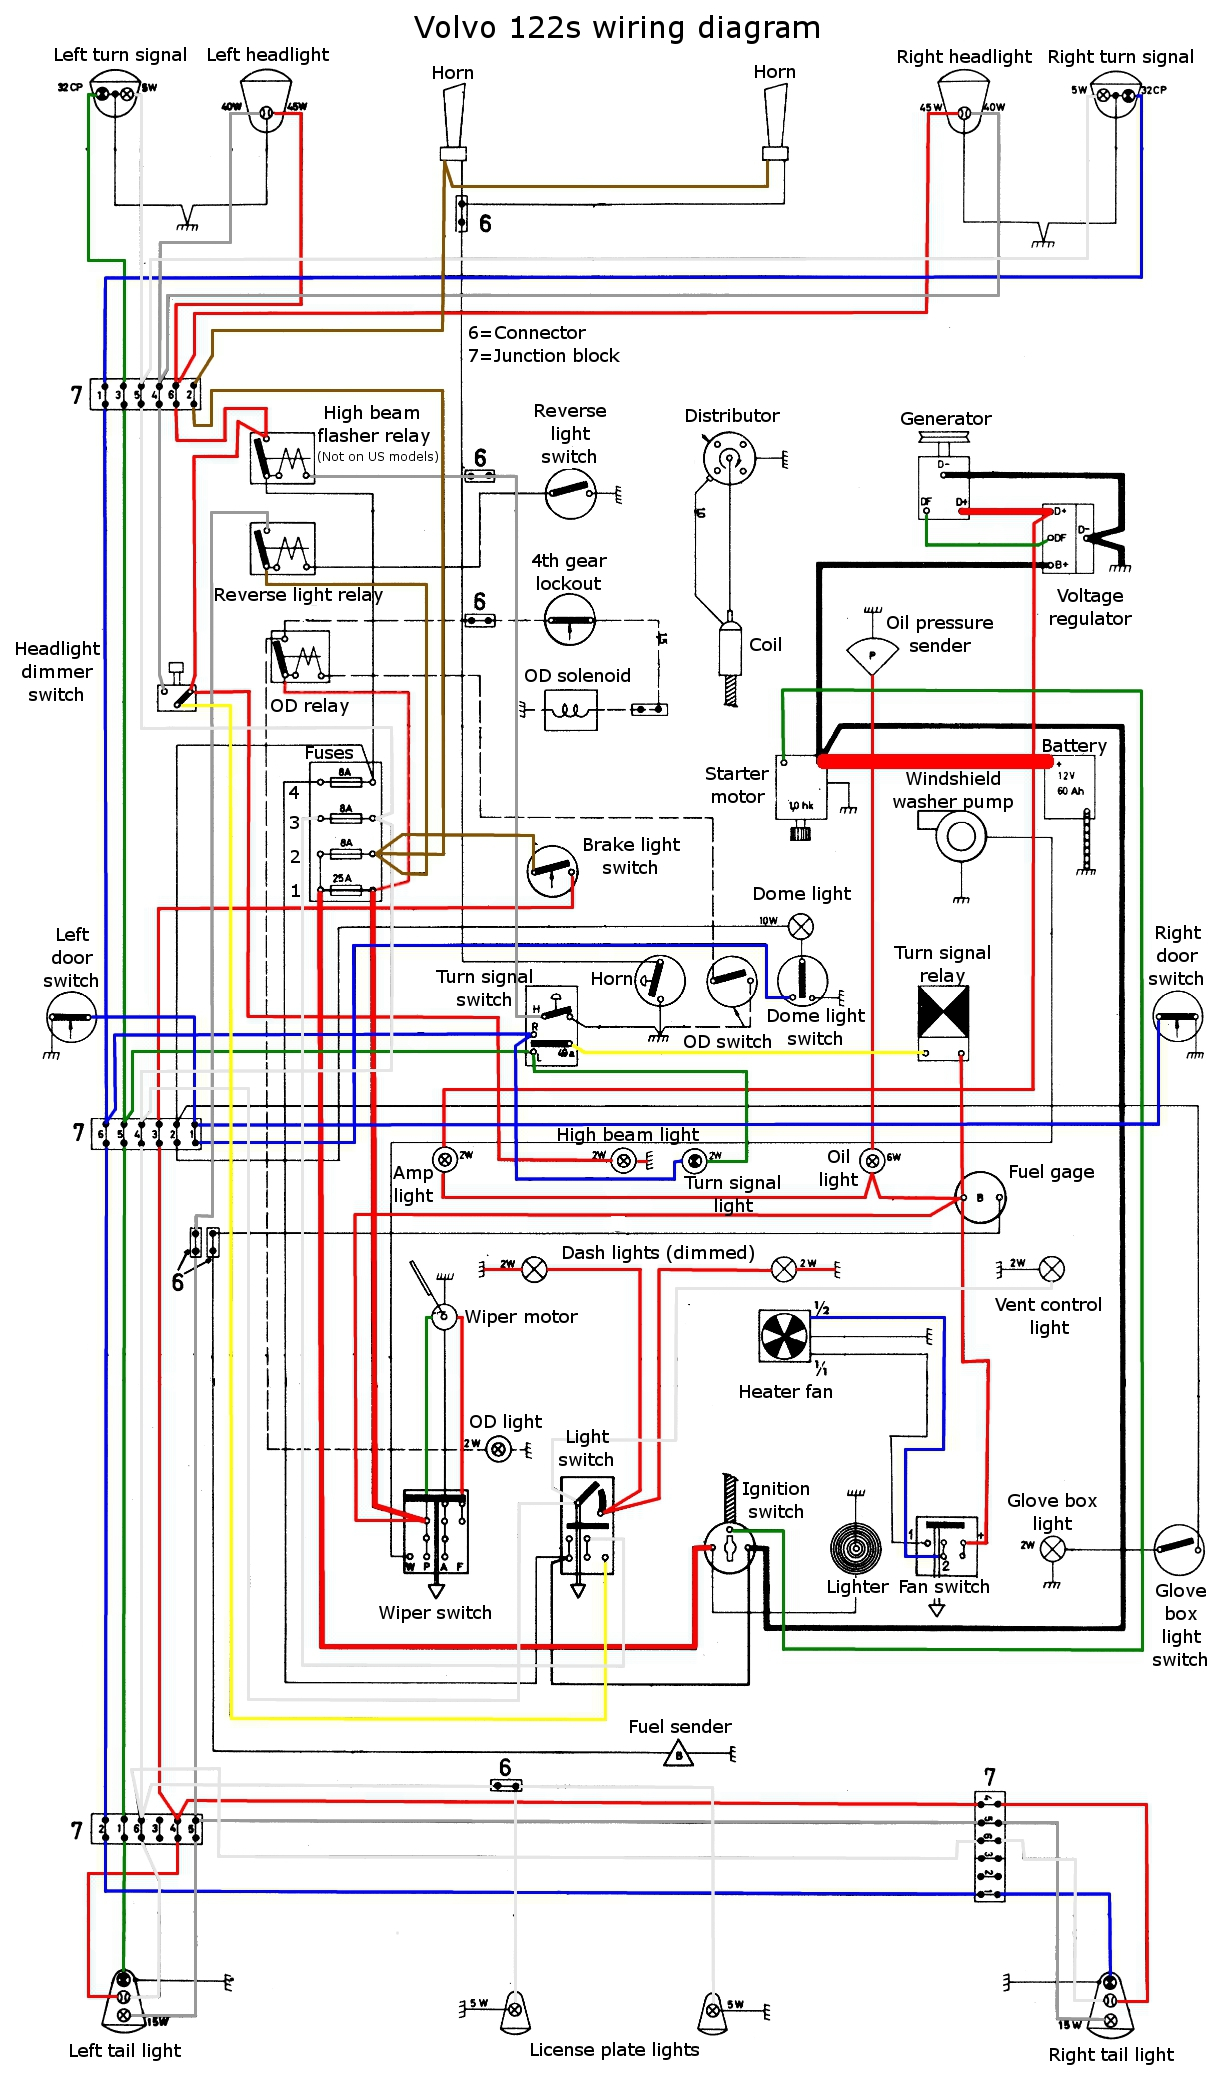 2001 volvo s80 wiring diagram last edited by lloyddobler; 05-25-2018 at 04:50 am